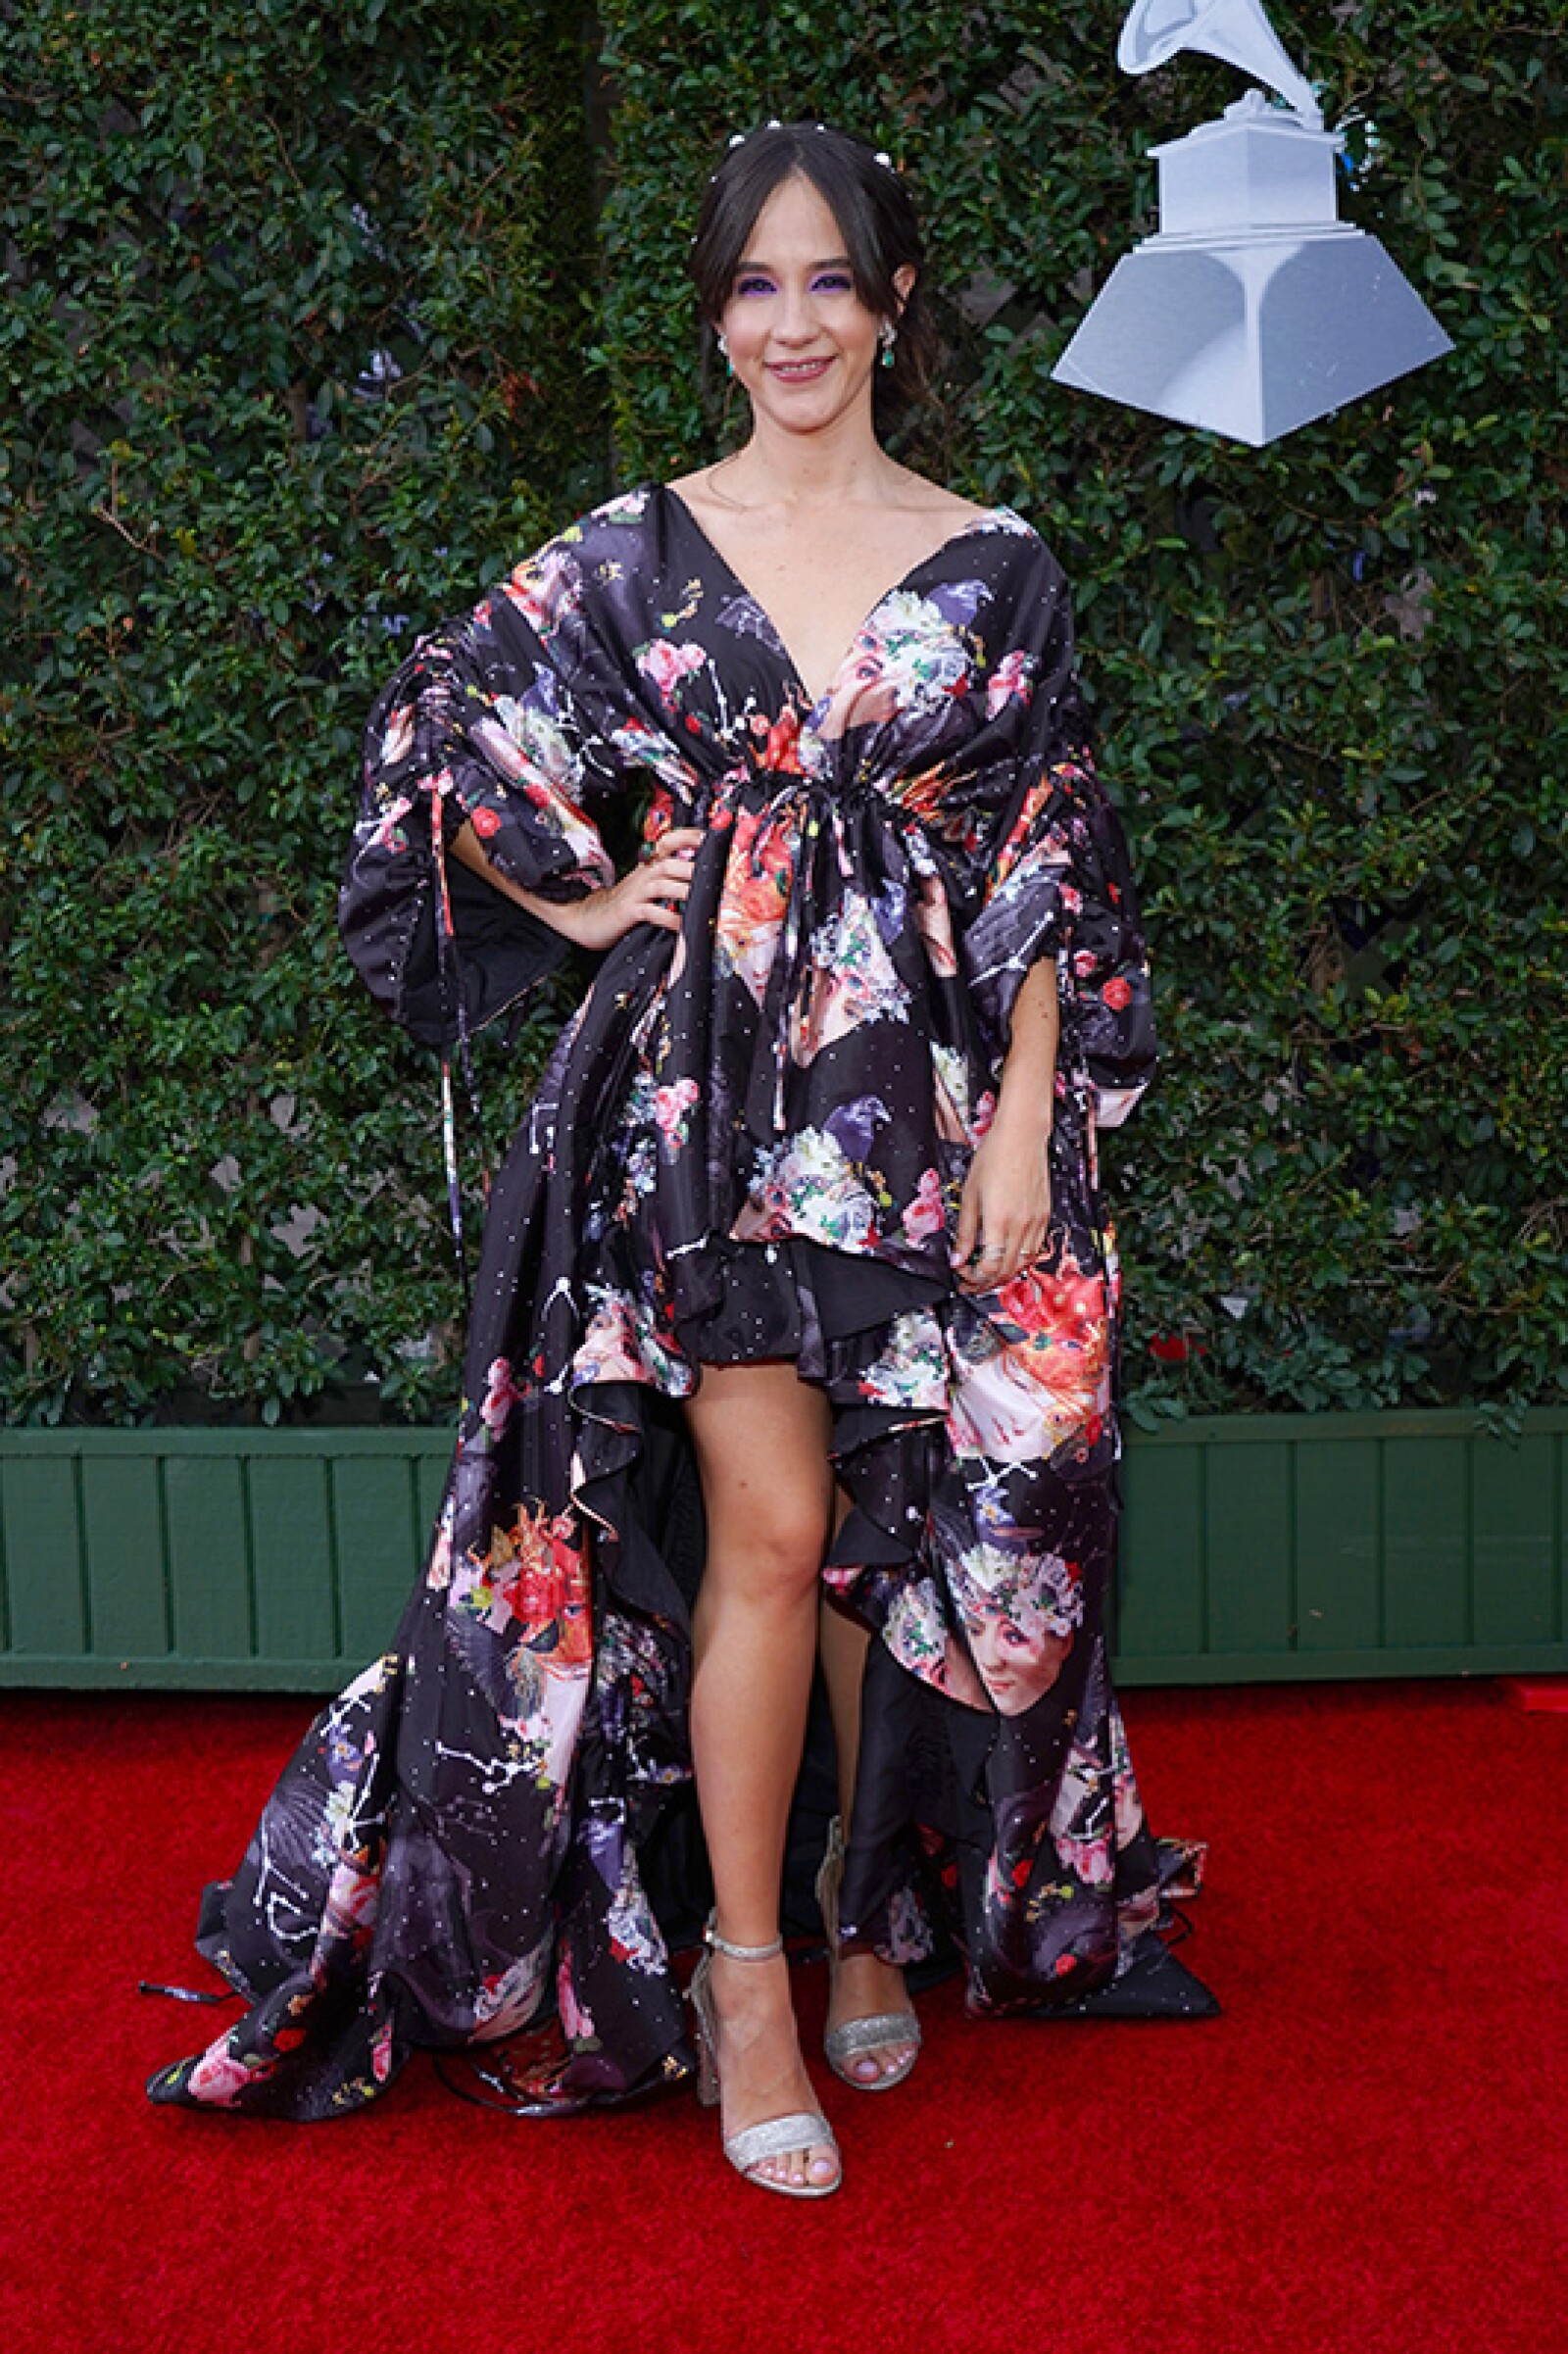 The 20th Annual Latin GRAMMY Awards - Red Carpet